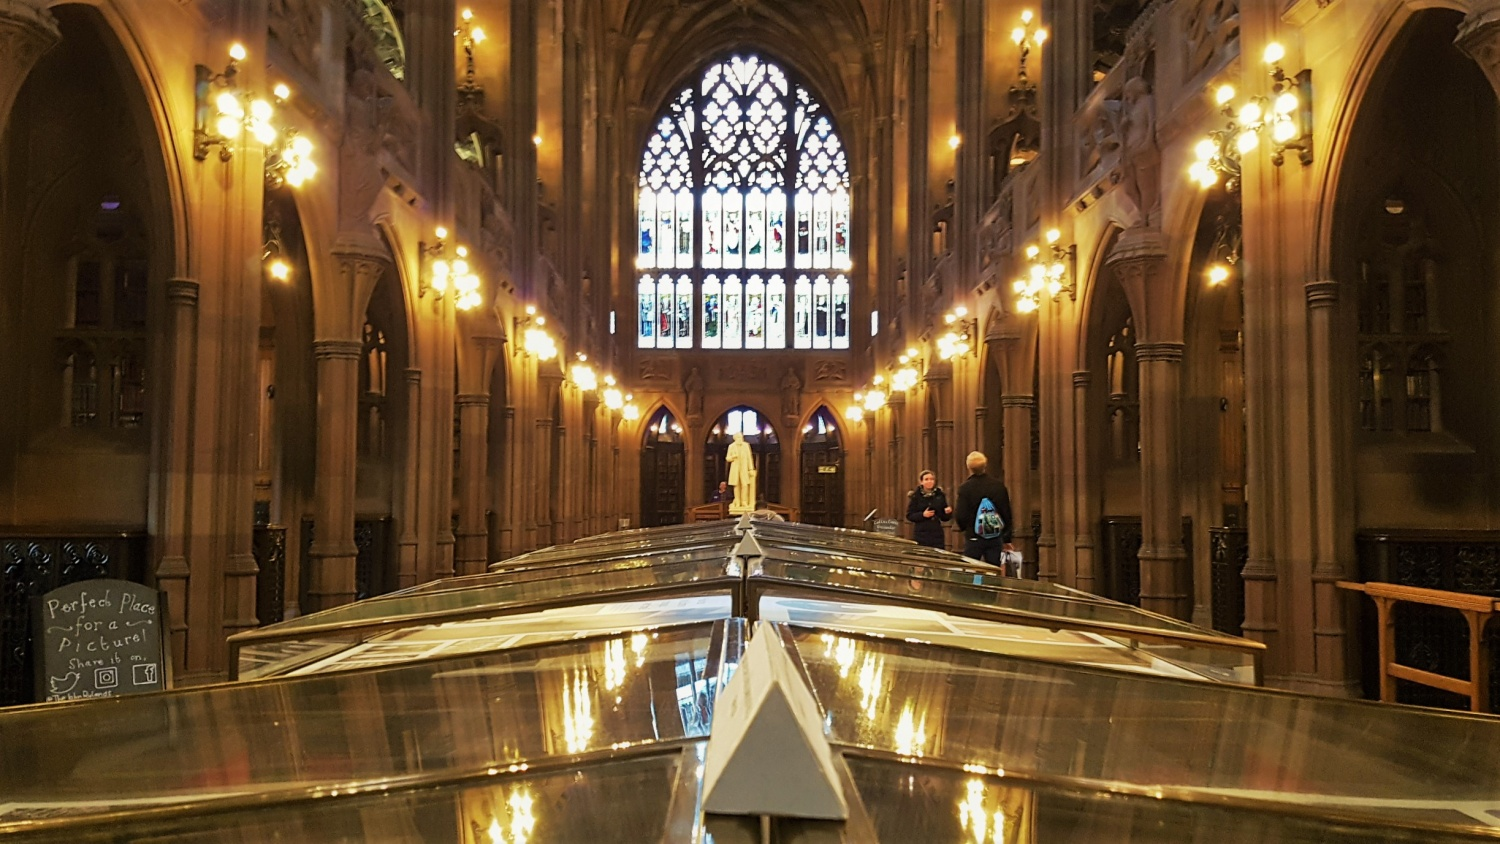 Rylands library Manchester